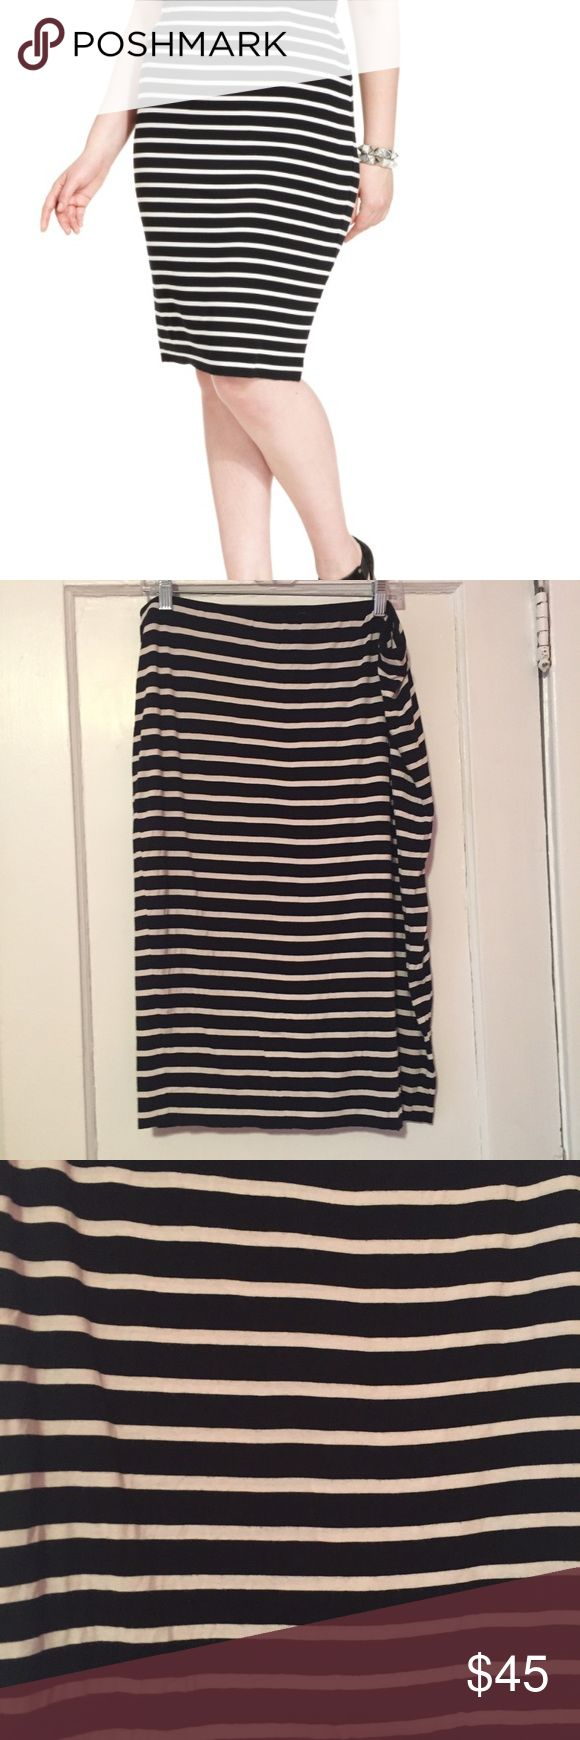 CLOSET CLOSING 4/20❗️Vince Camuto Striped Skirt Vince Camuto Black and White Striped Pencil Skirt. It's a double layered super soft and lightweight skirt with an elastic band. it's not a tight pencil skirt, it's more of a flowy one. It has been worn so the white isn't as bright as it used to be Vince Camuto Skirts Pencil